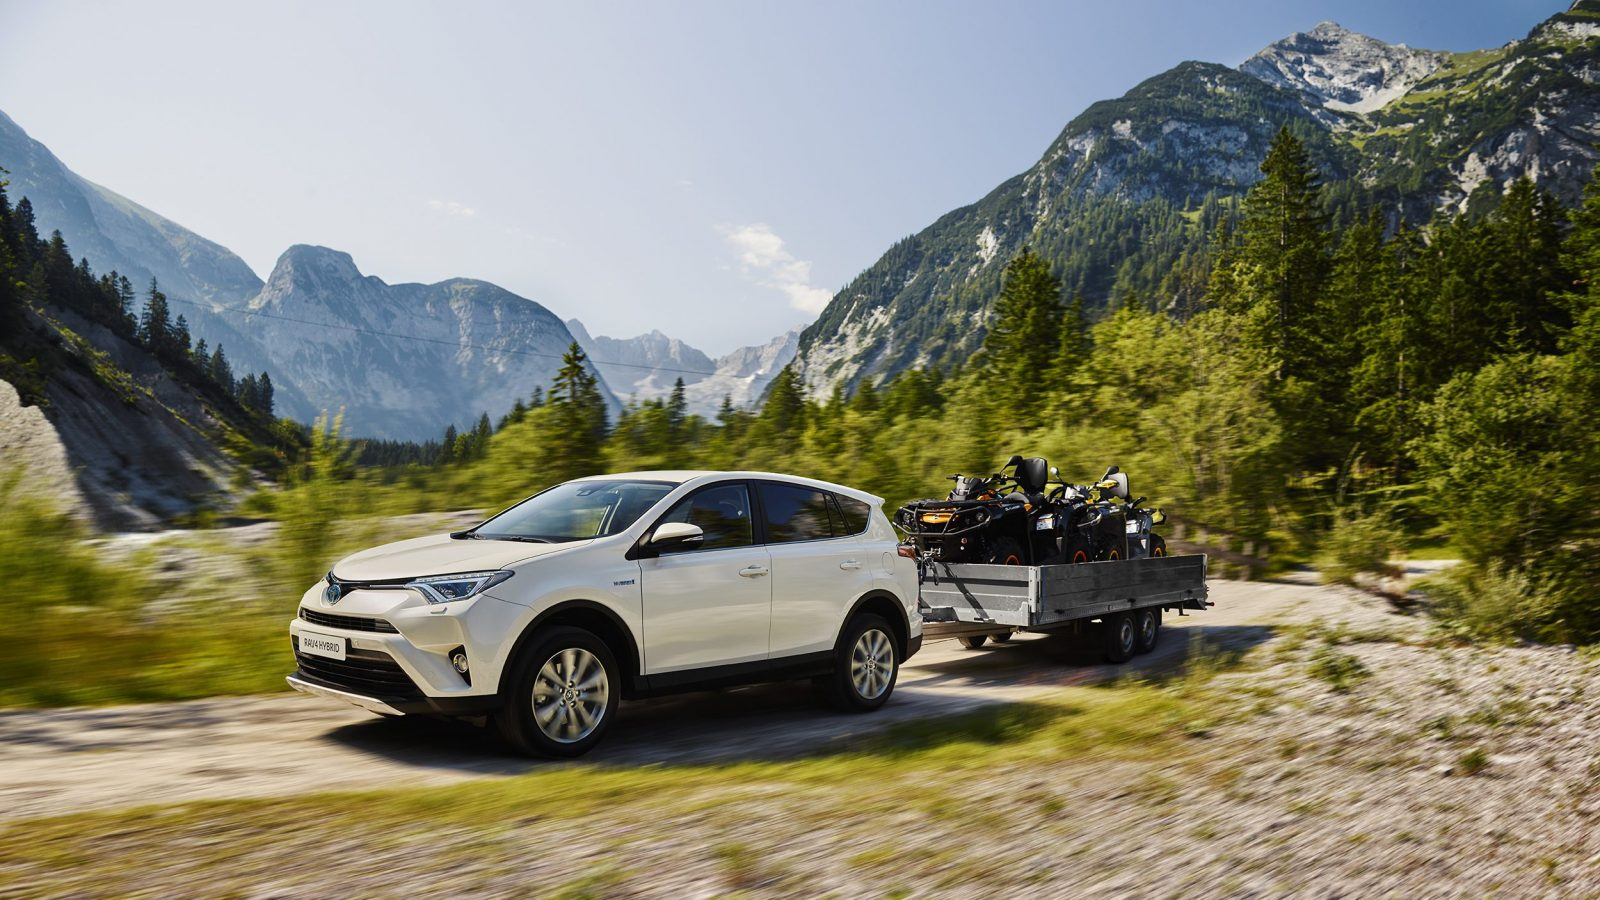 Toyota RAV4 Hybrid tows a trailer off-road